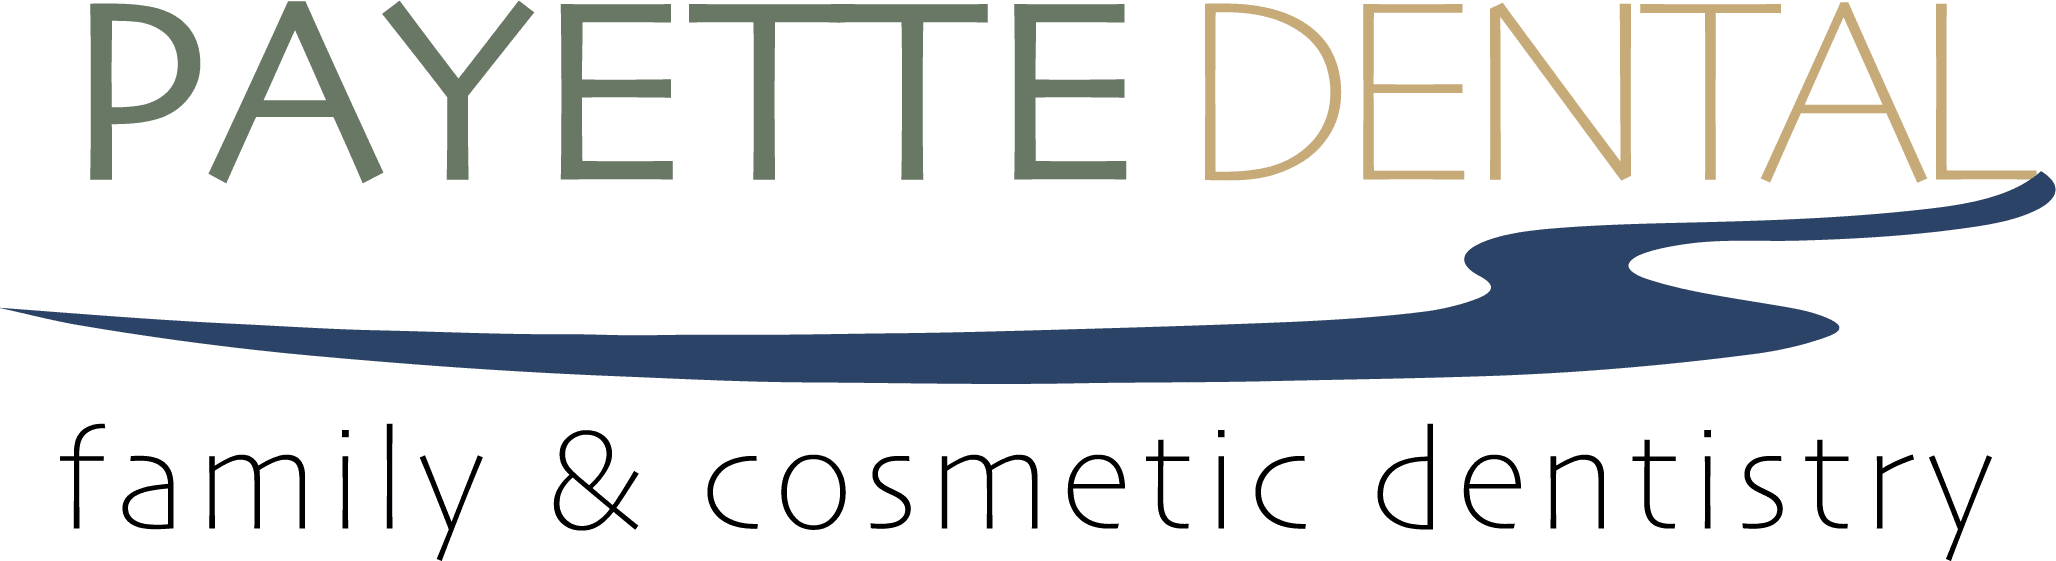 Payette Dental